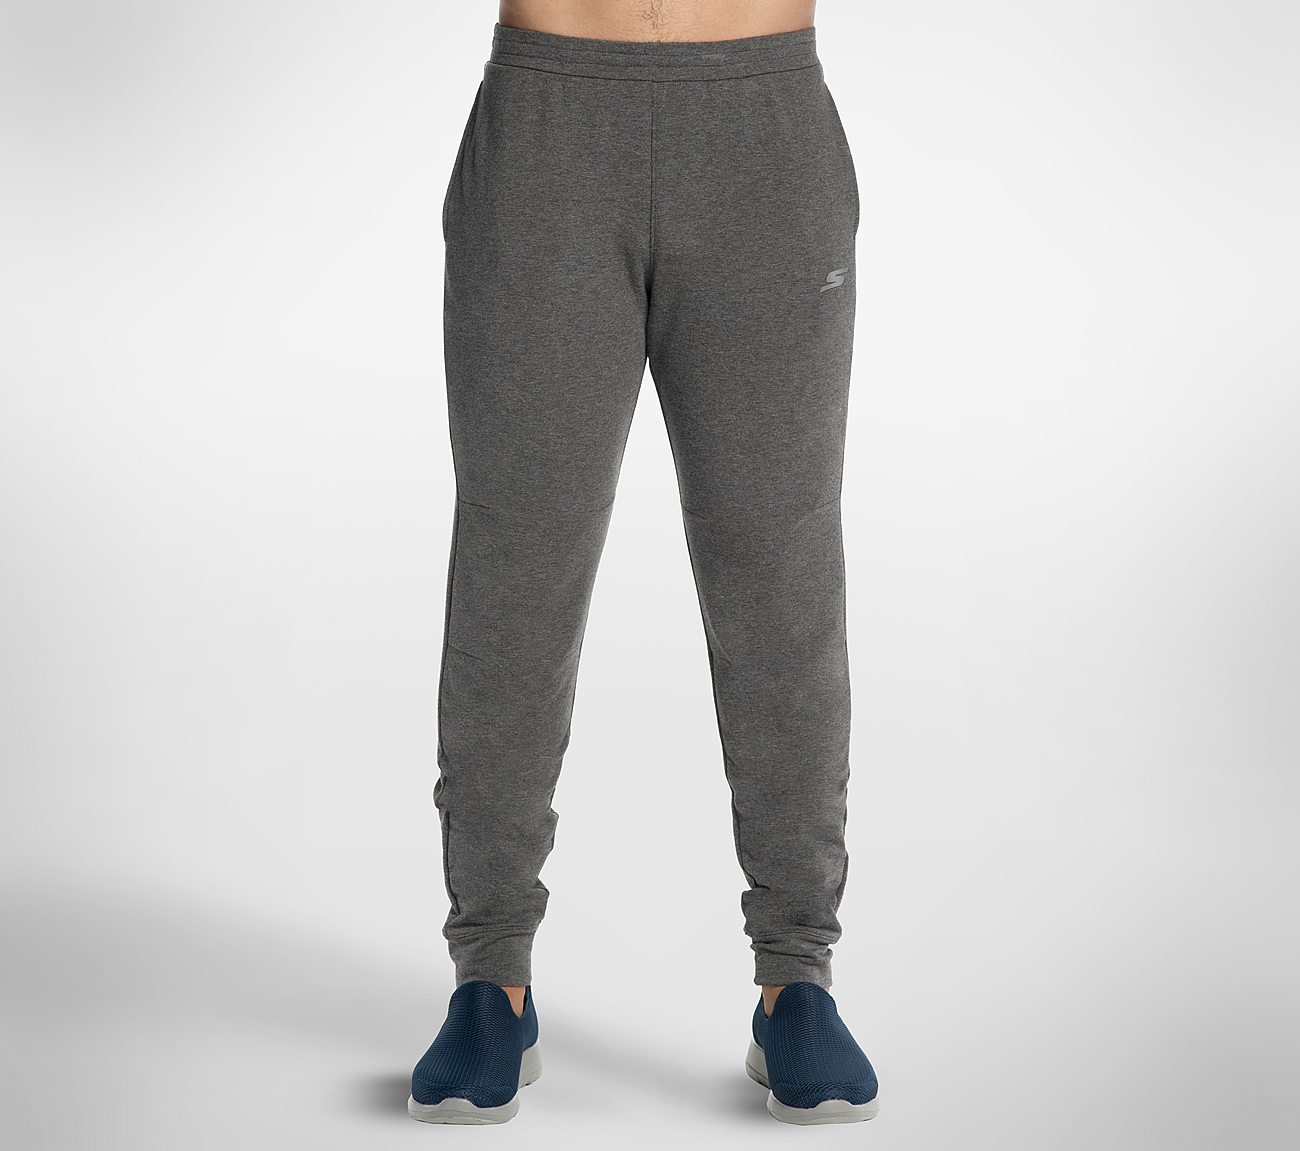 GO Train Rep Jogger Pant